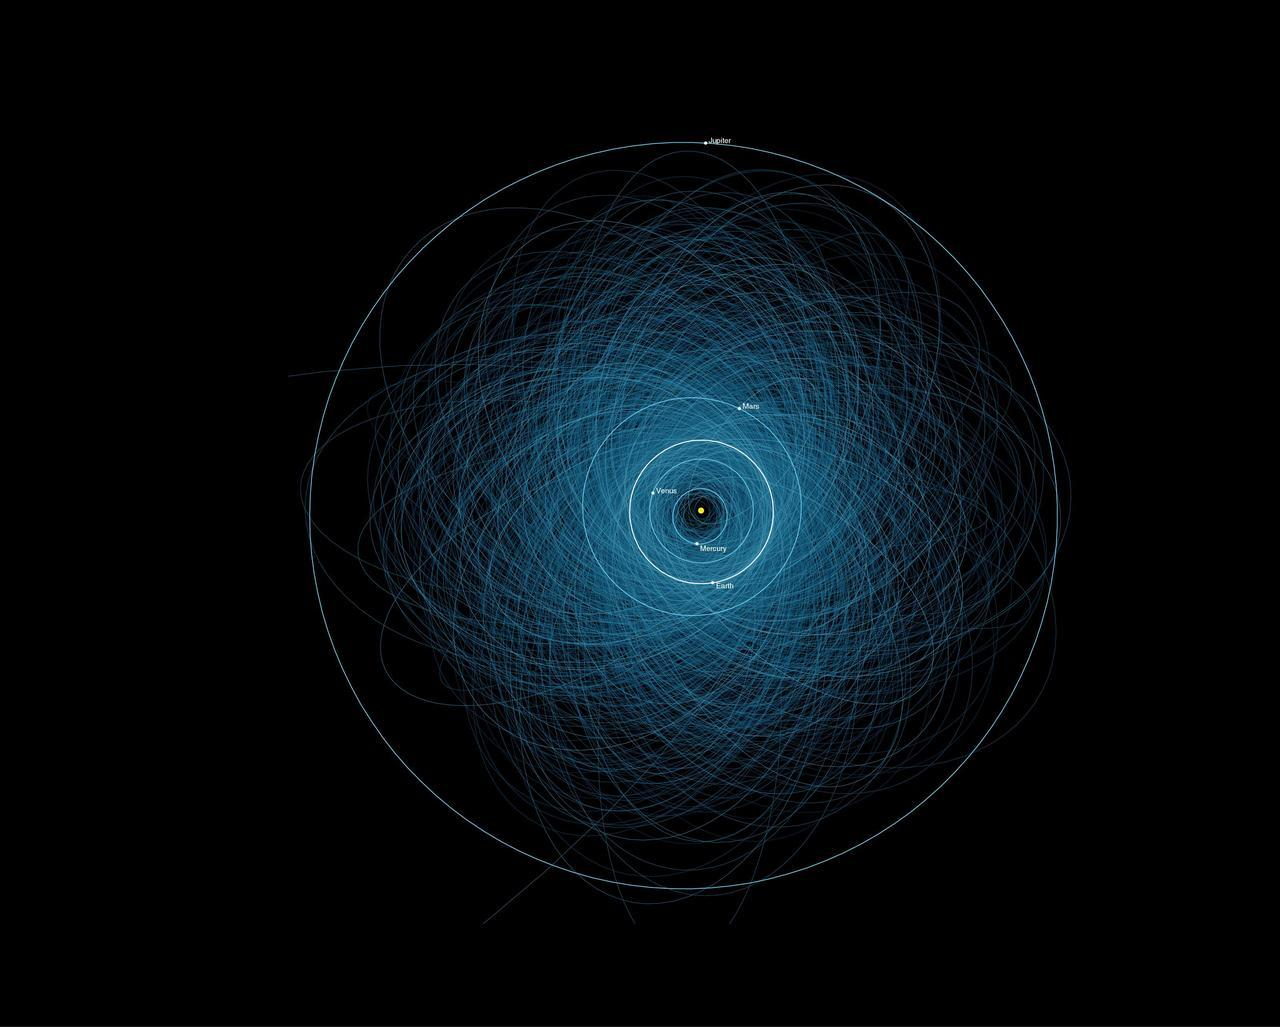 NASA Orbits of Potentially Hazardous Asteroids PHA